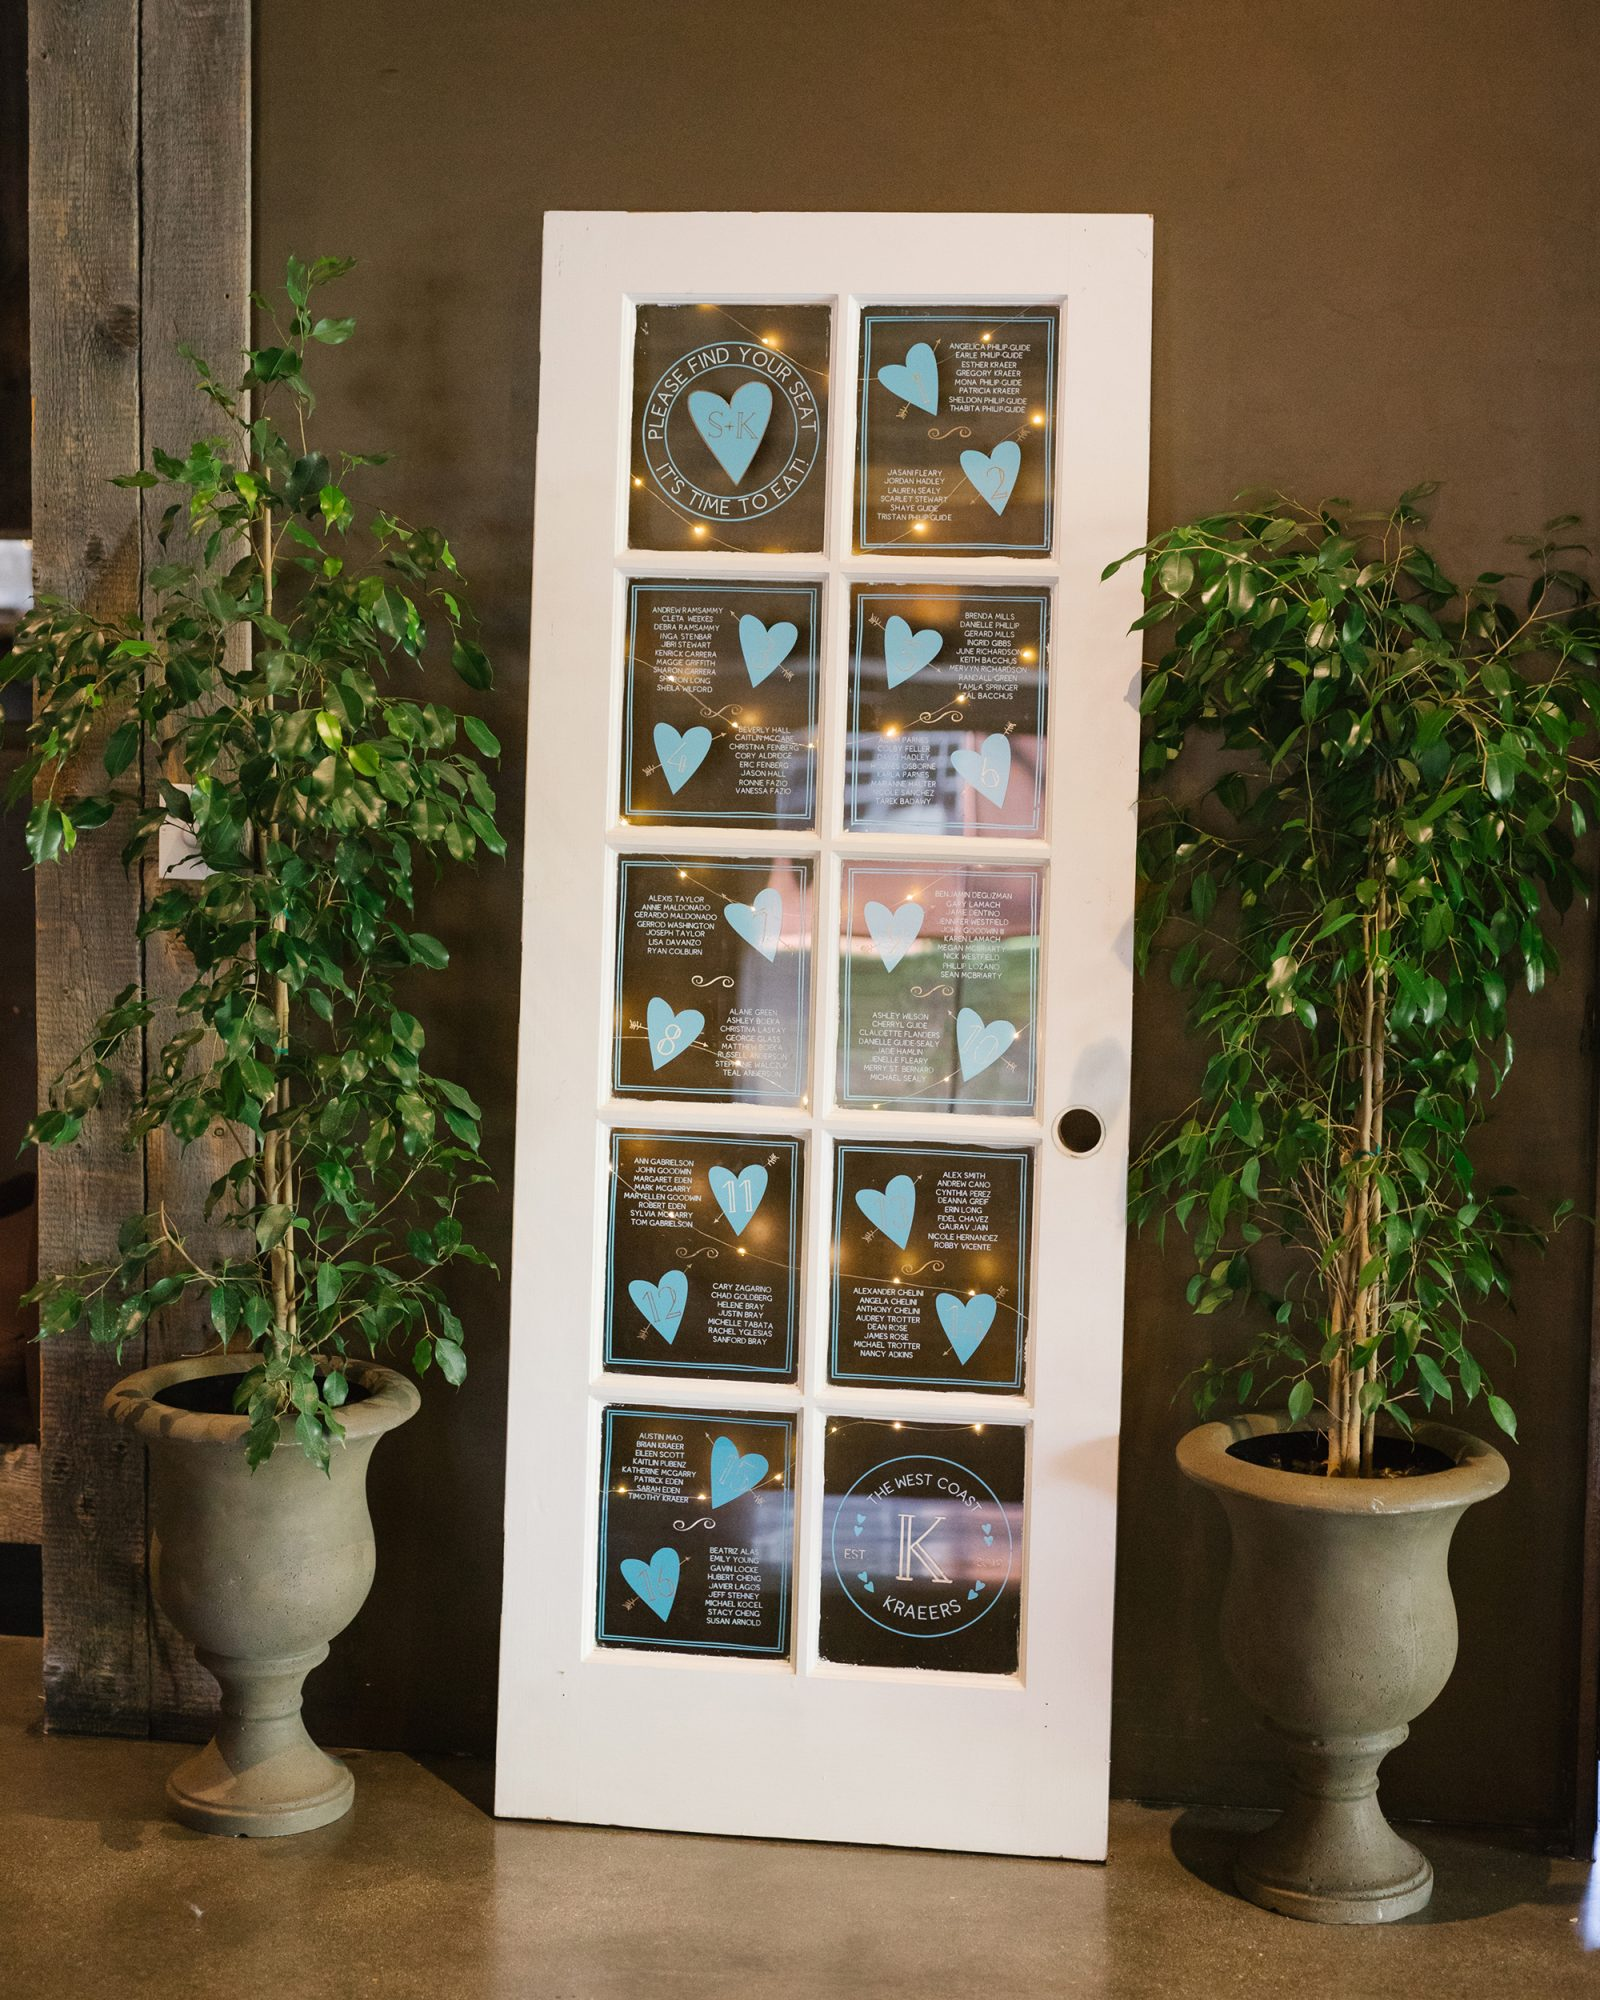 shelana kevin wedding seating chart with names written on window door design